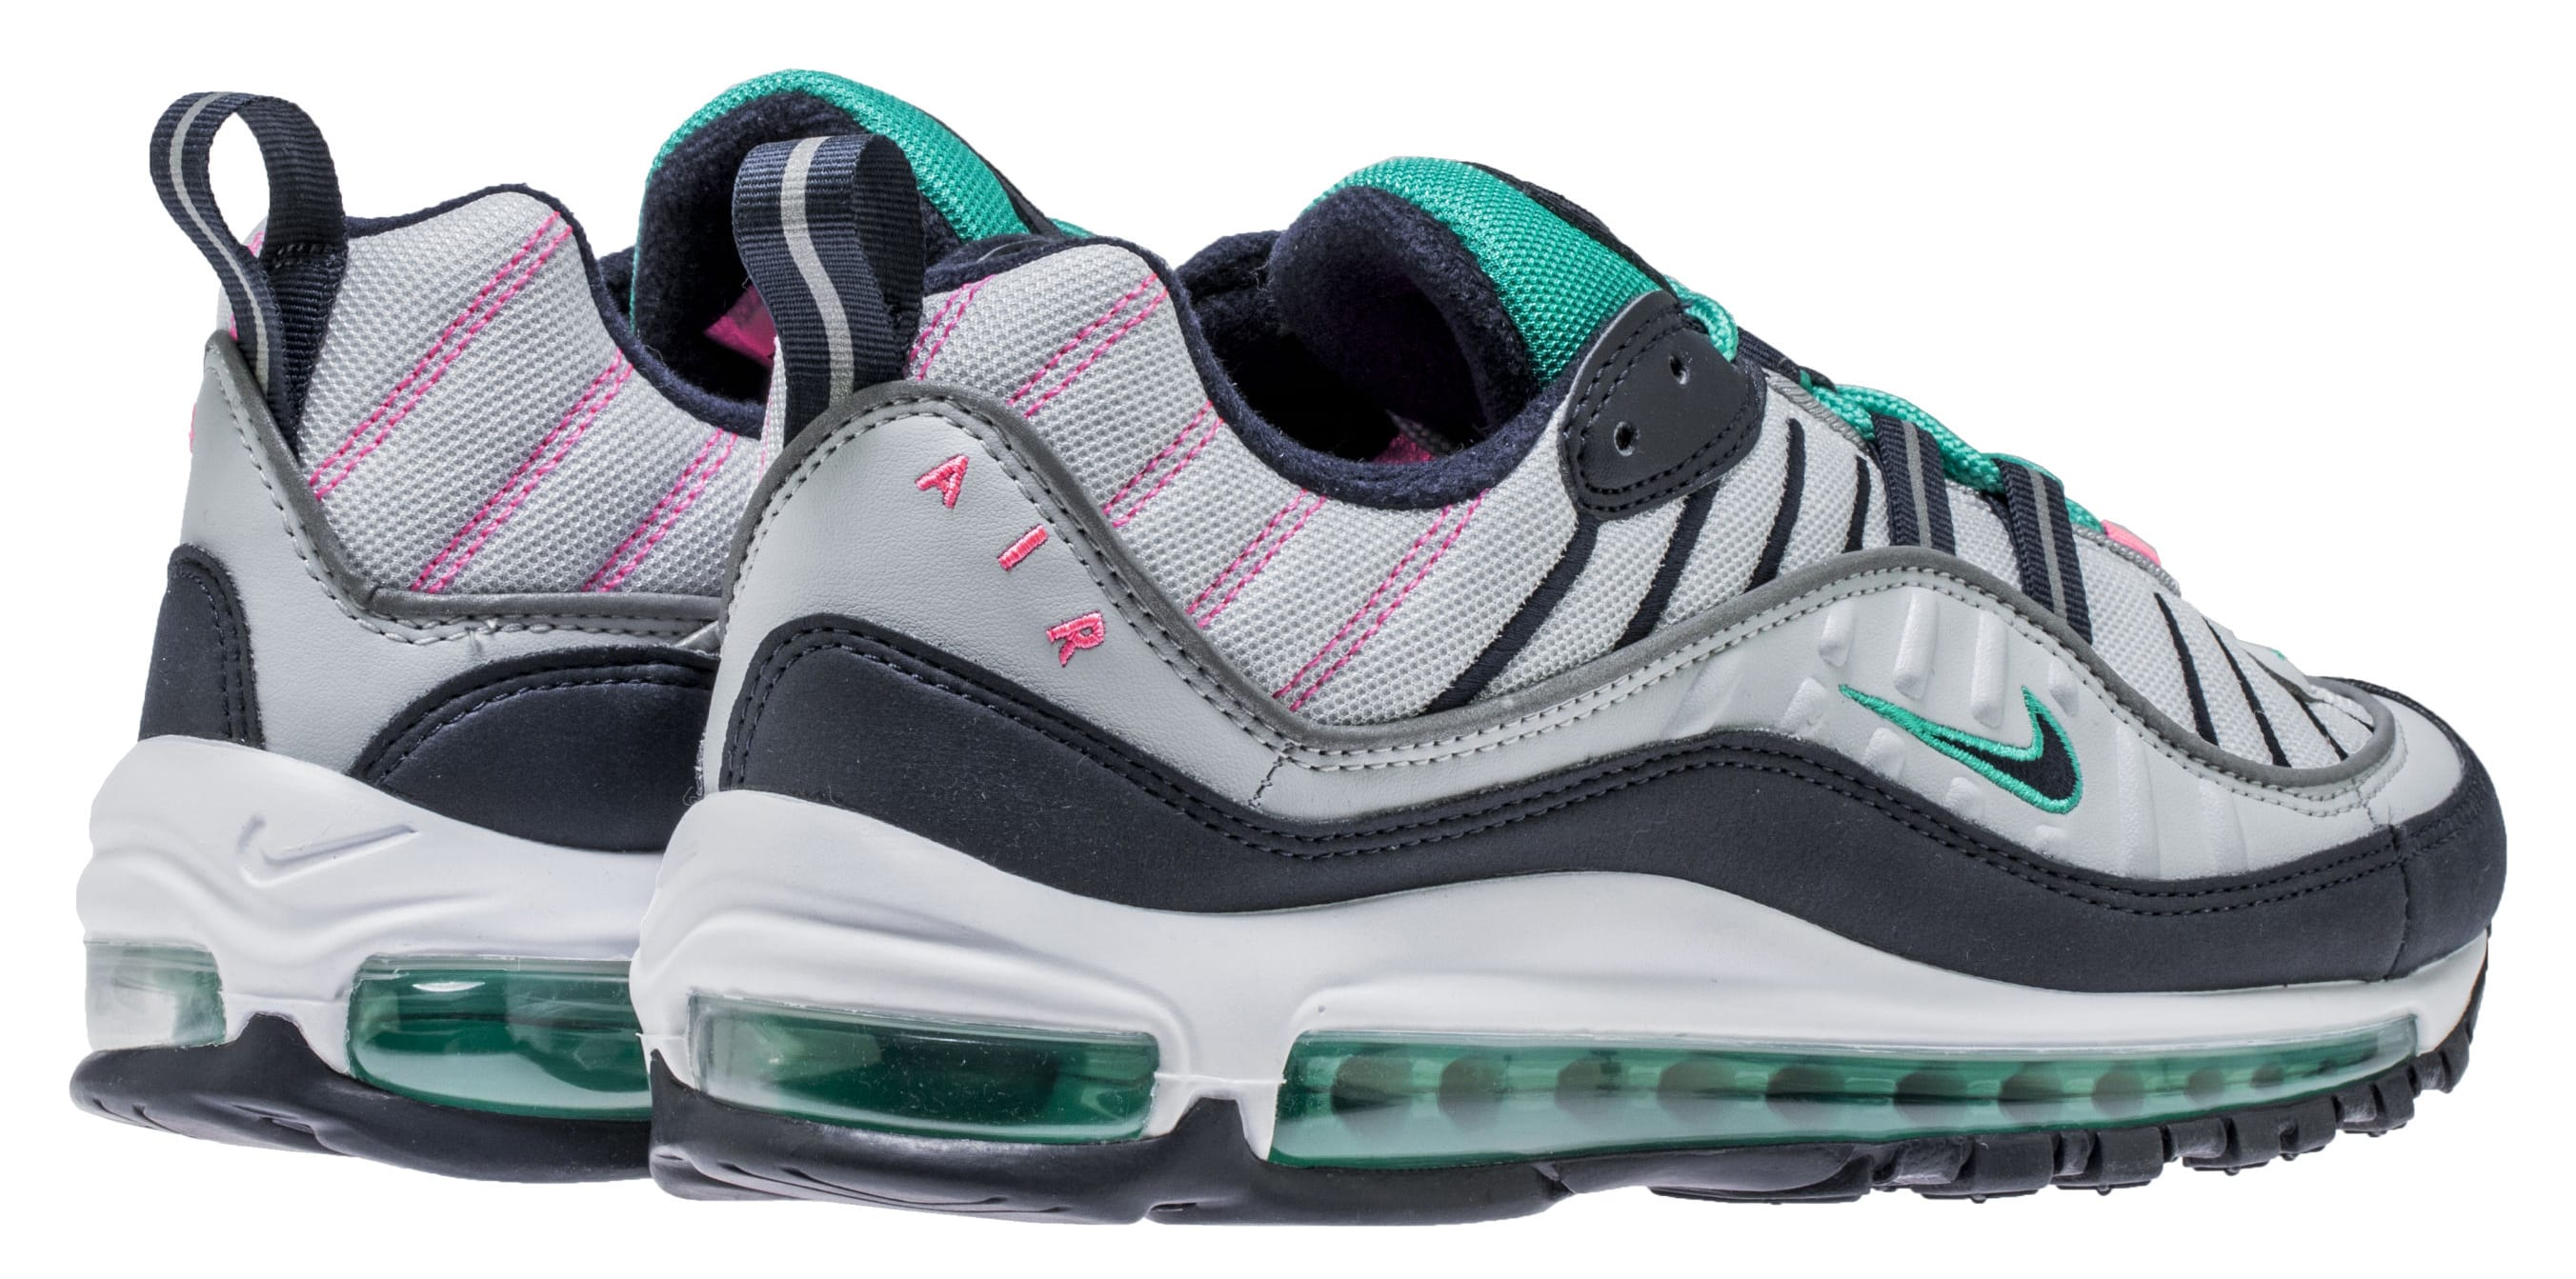 cheap for discount 09f84 1b438 ... denmark image via shoe palace nike air max 98 pure platinum obsidian  kinetic green 640744 005